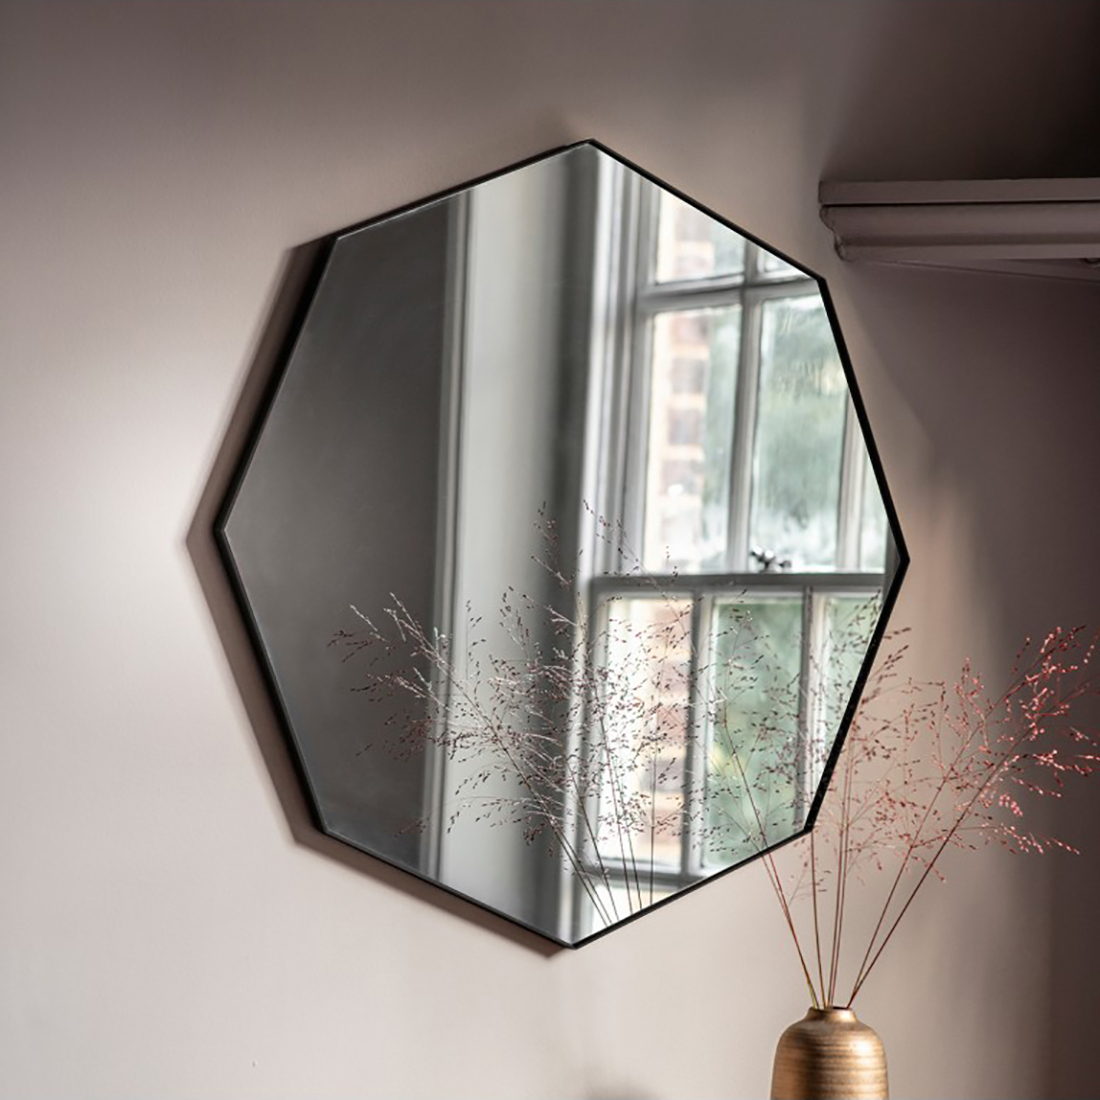 Black Metal Octagonal Wall Mirror With Latest Metal Frame Wall Mirrors (View 6 of 20)